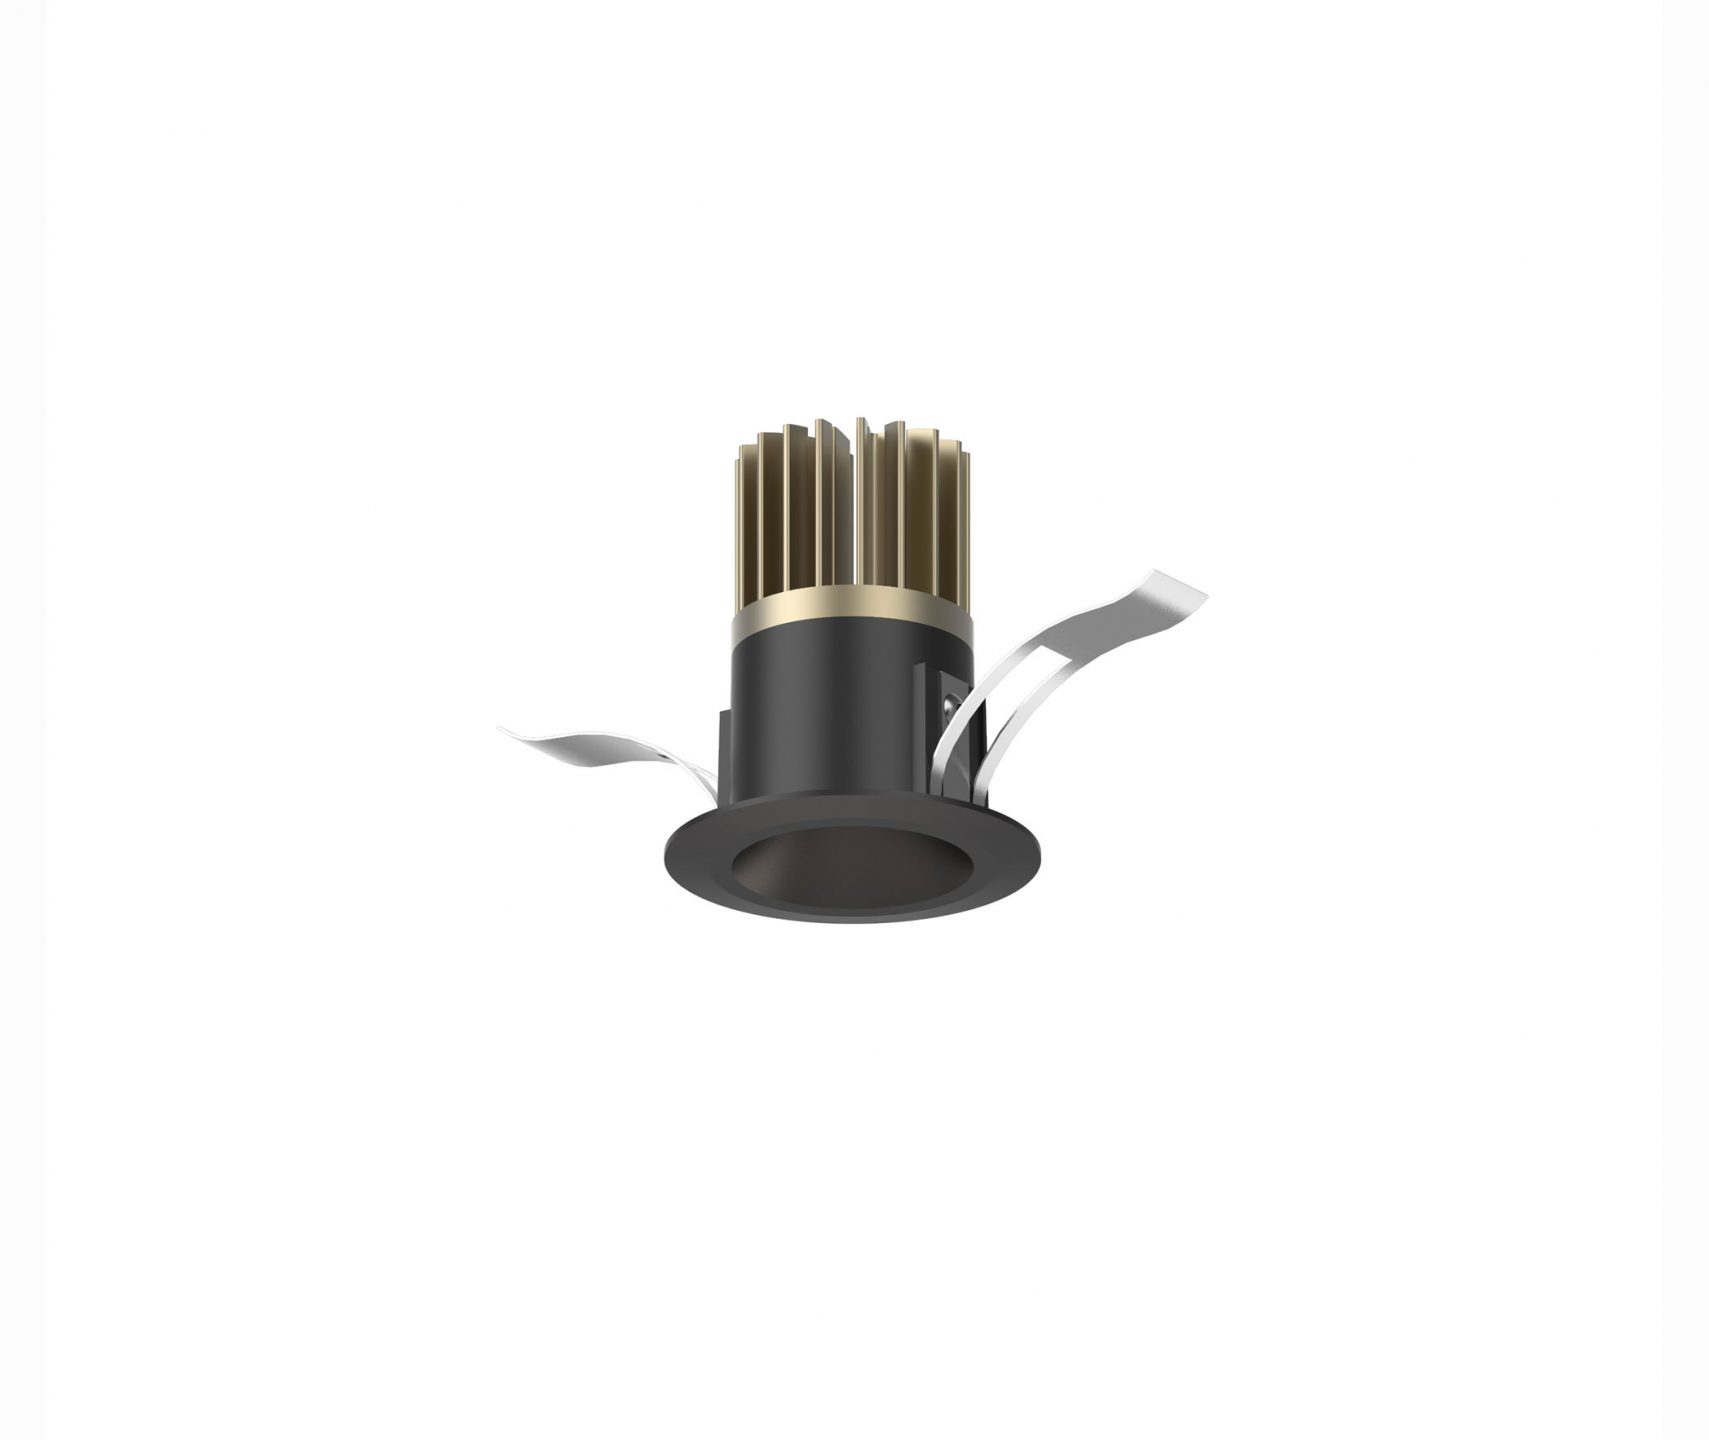 SONNEMAN_Intervals-Recessed-Downlights-Fixed-Round-Bevel-1_int_products